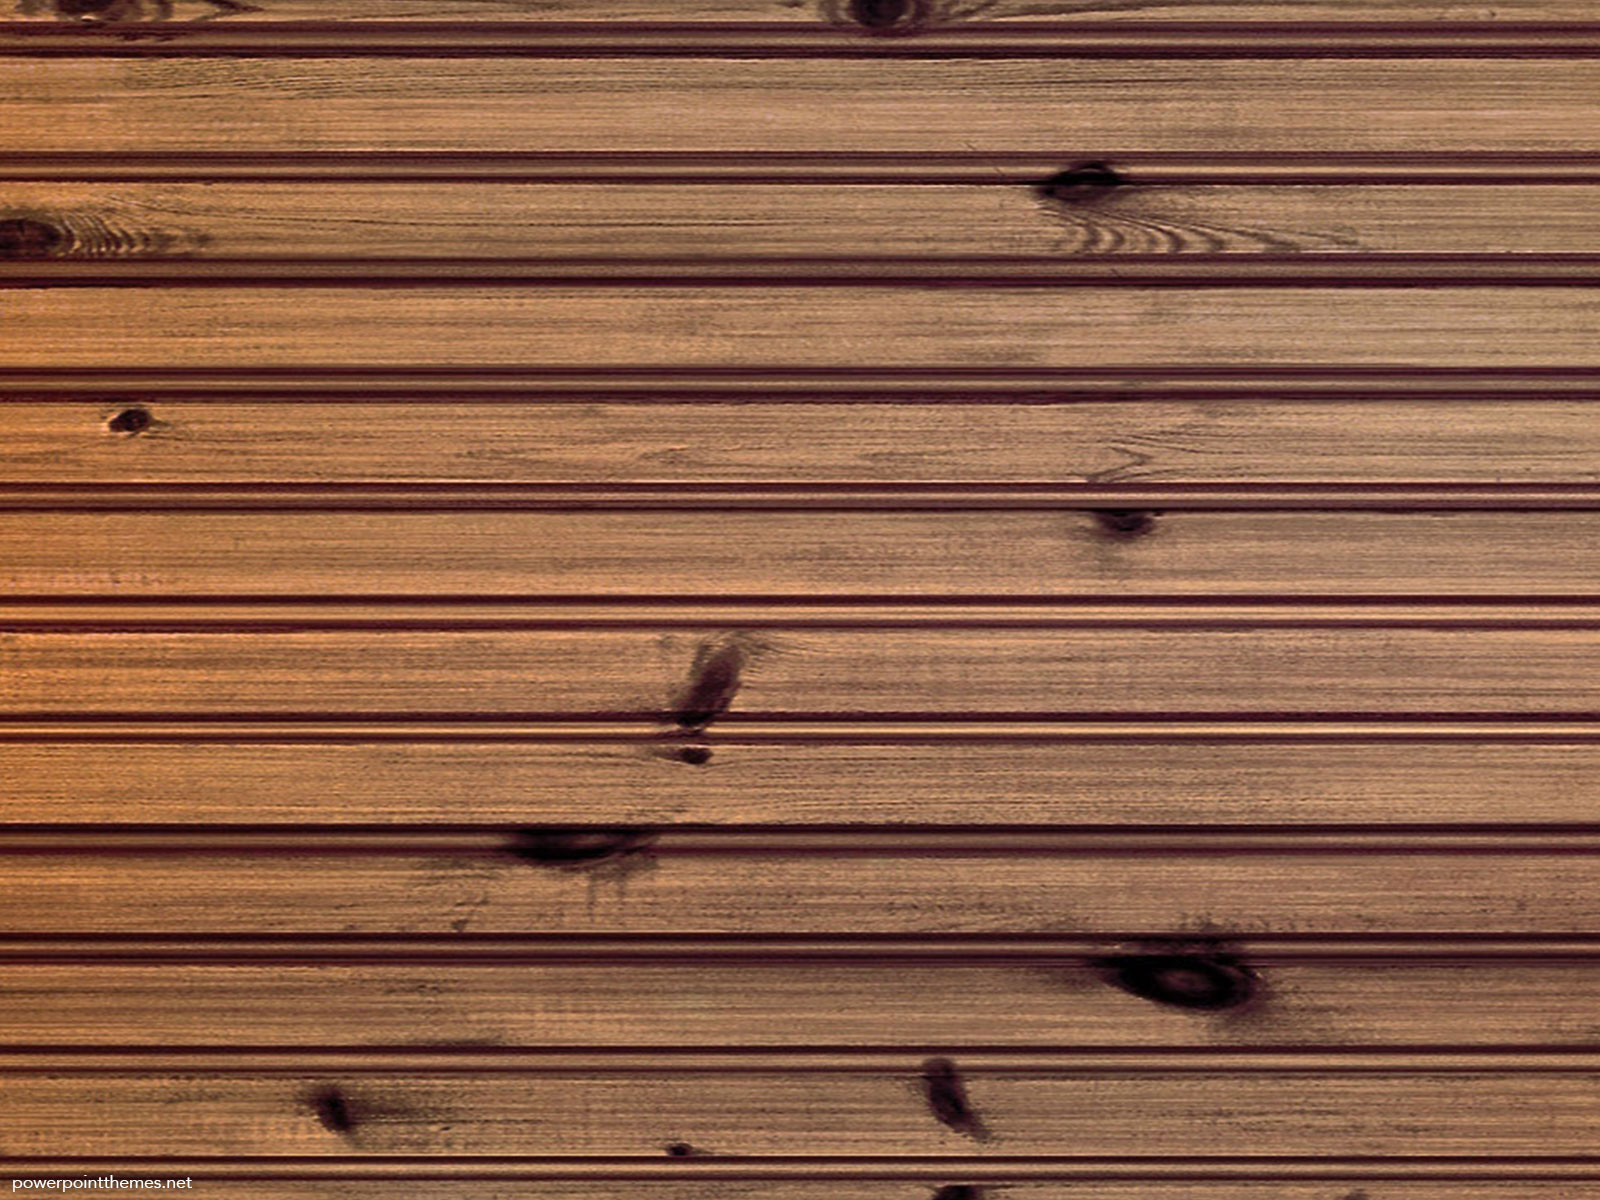 Wooden panel background powerpoint themes